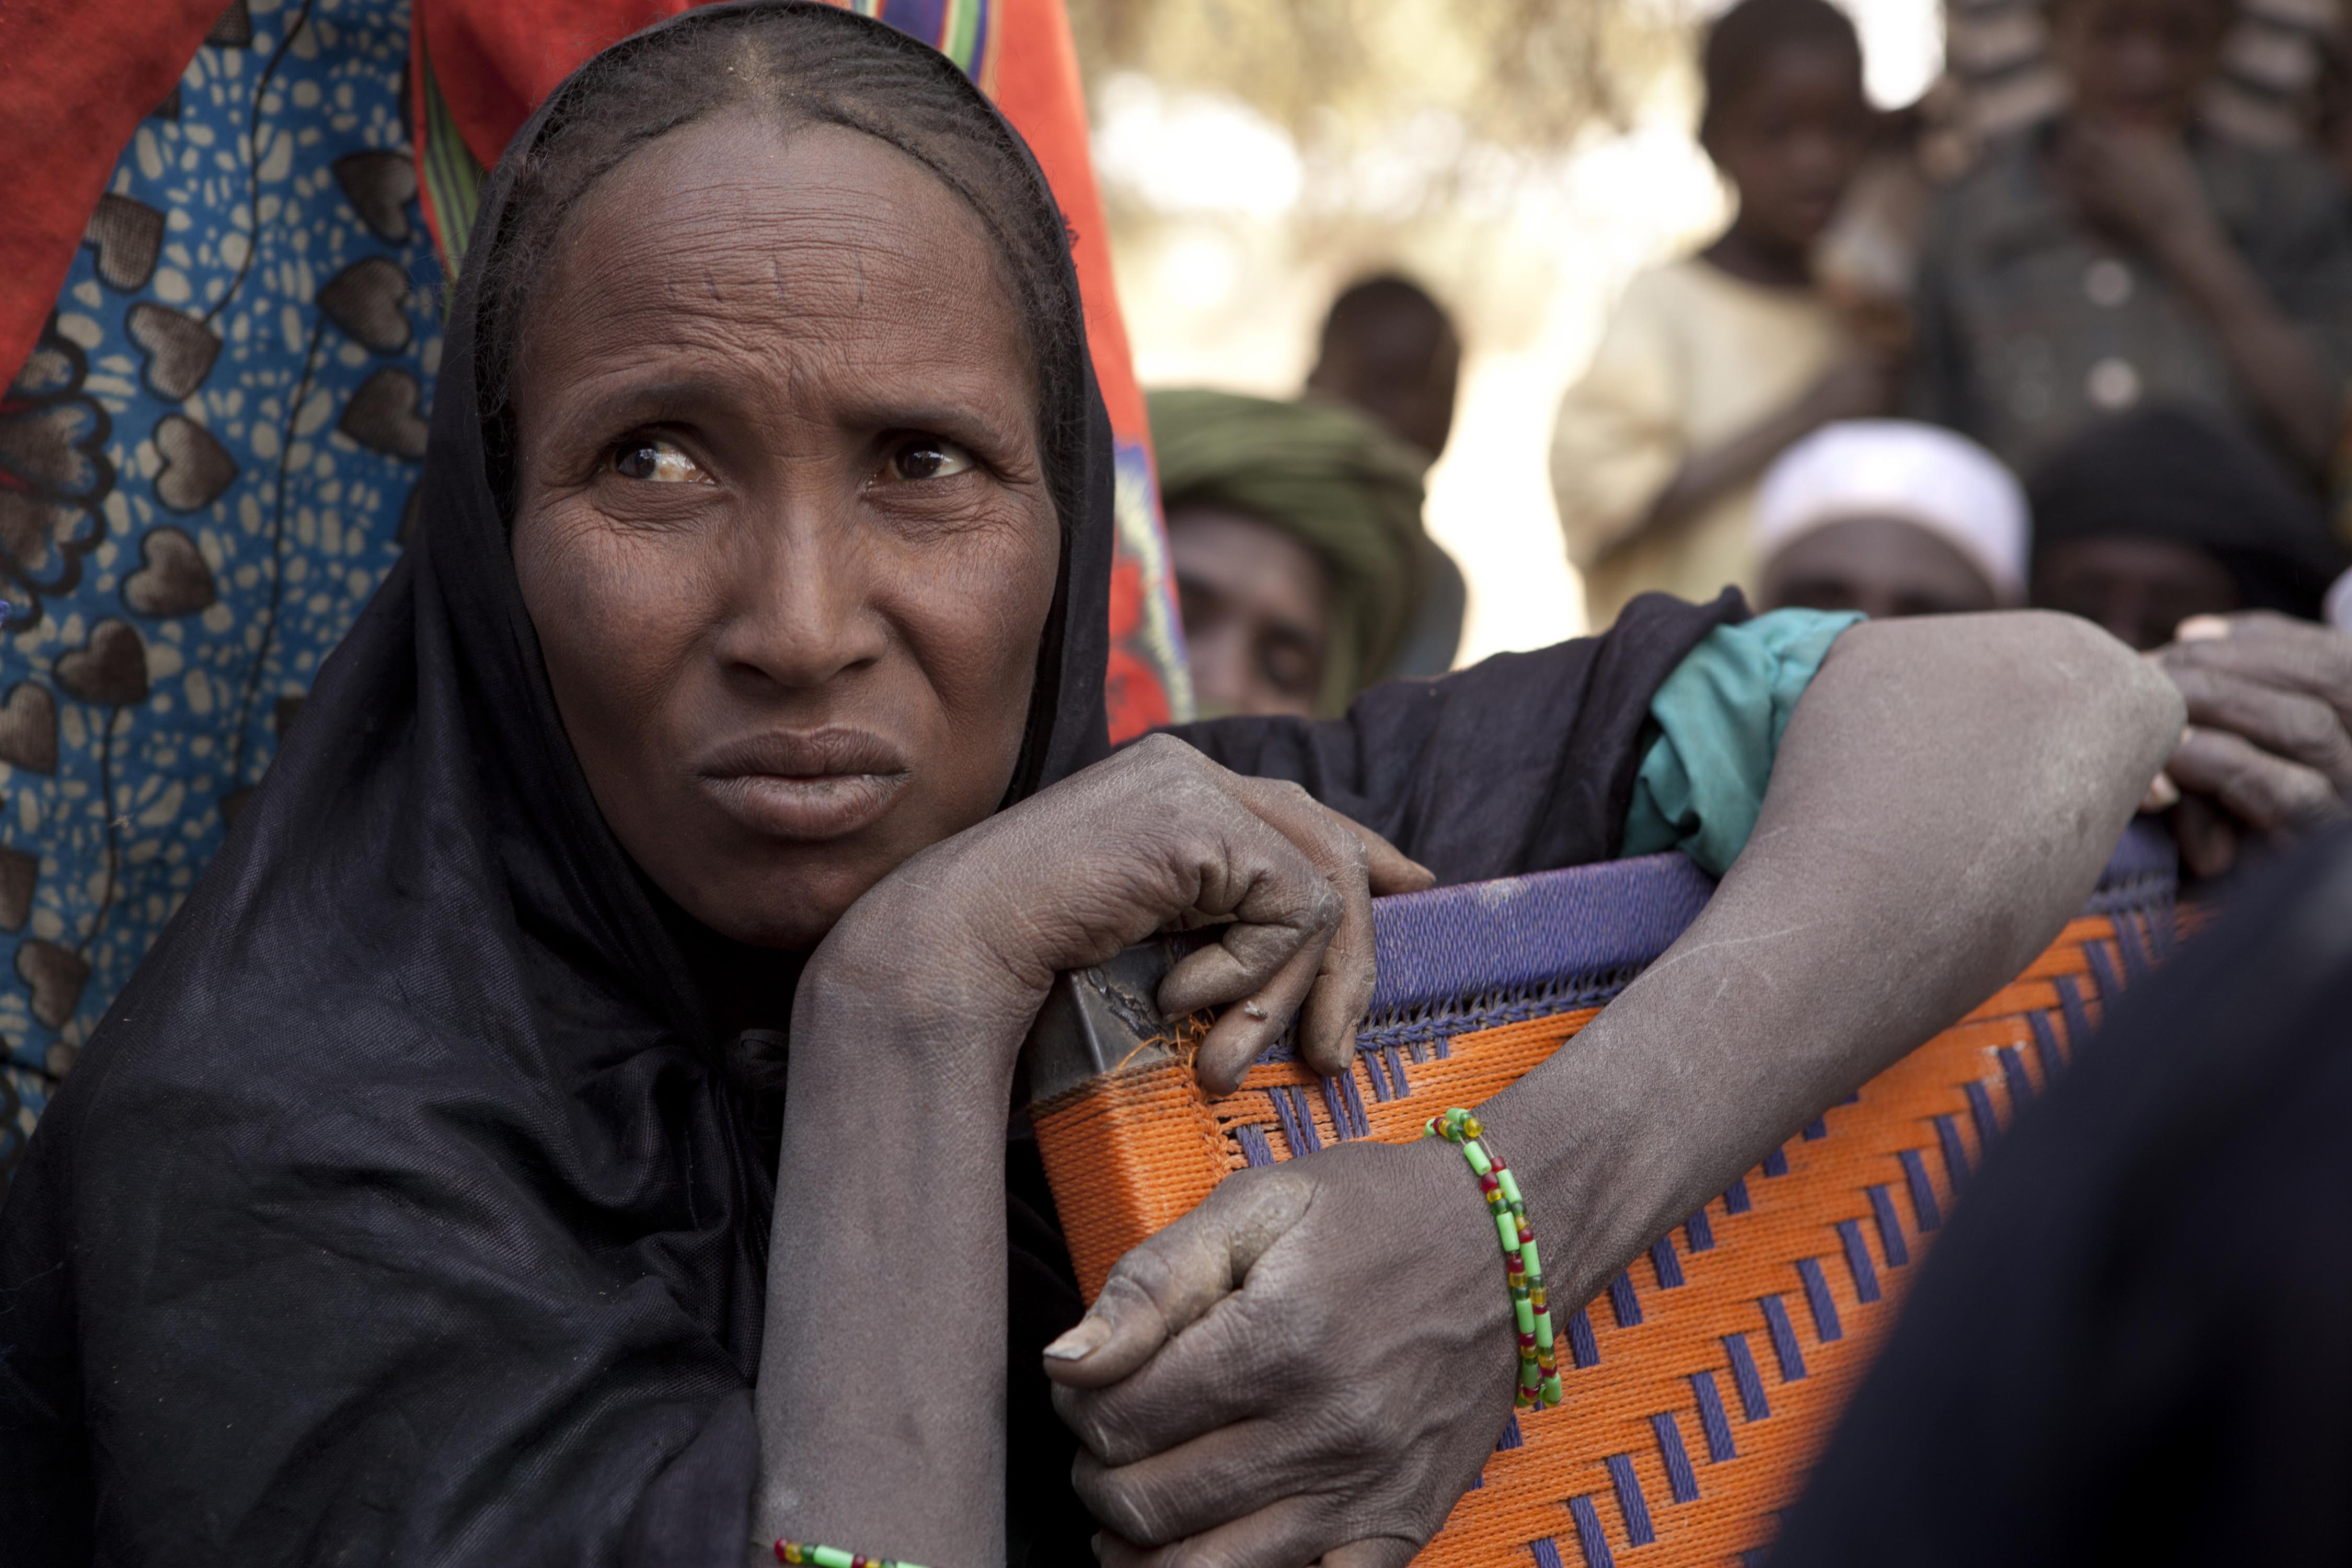 A Malian refugee woman in Mangaize, northern Niger, ponders her future. In January, she and her family fled Menaka, a town in Mali, because of the general insecurity and fighting between the army and Tuareg fighters